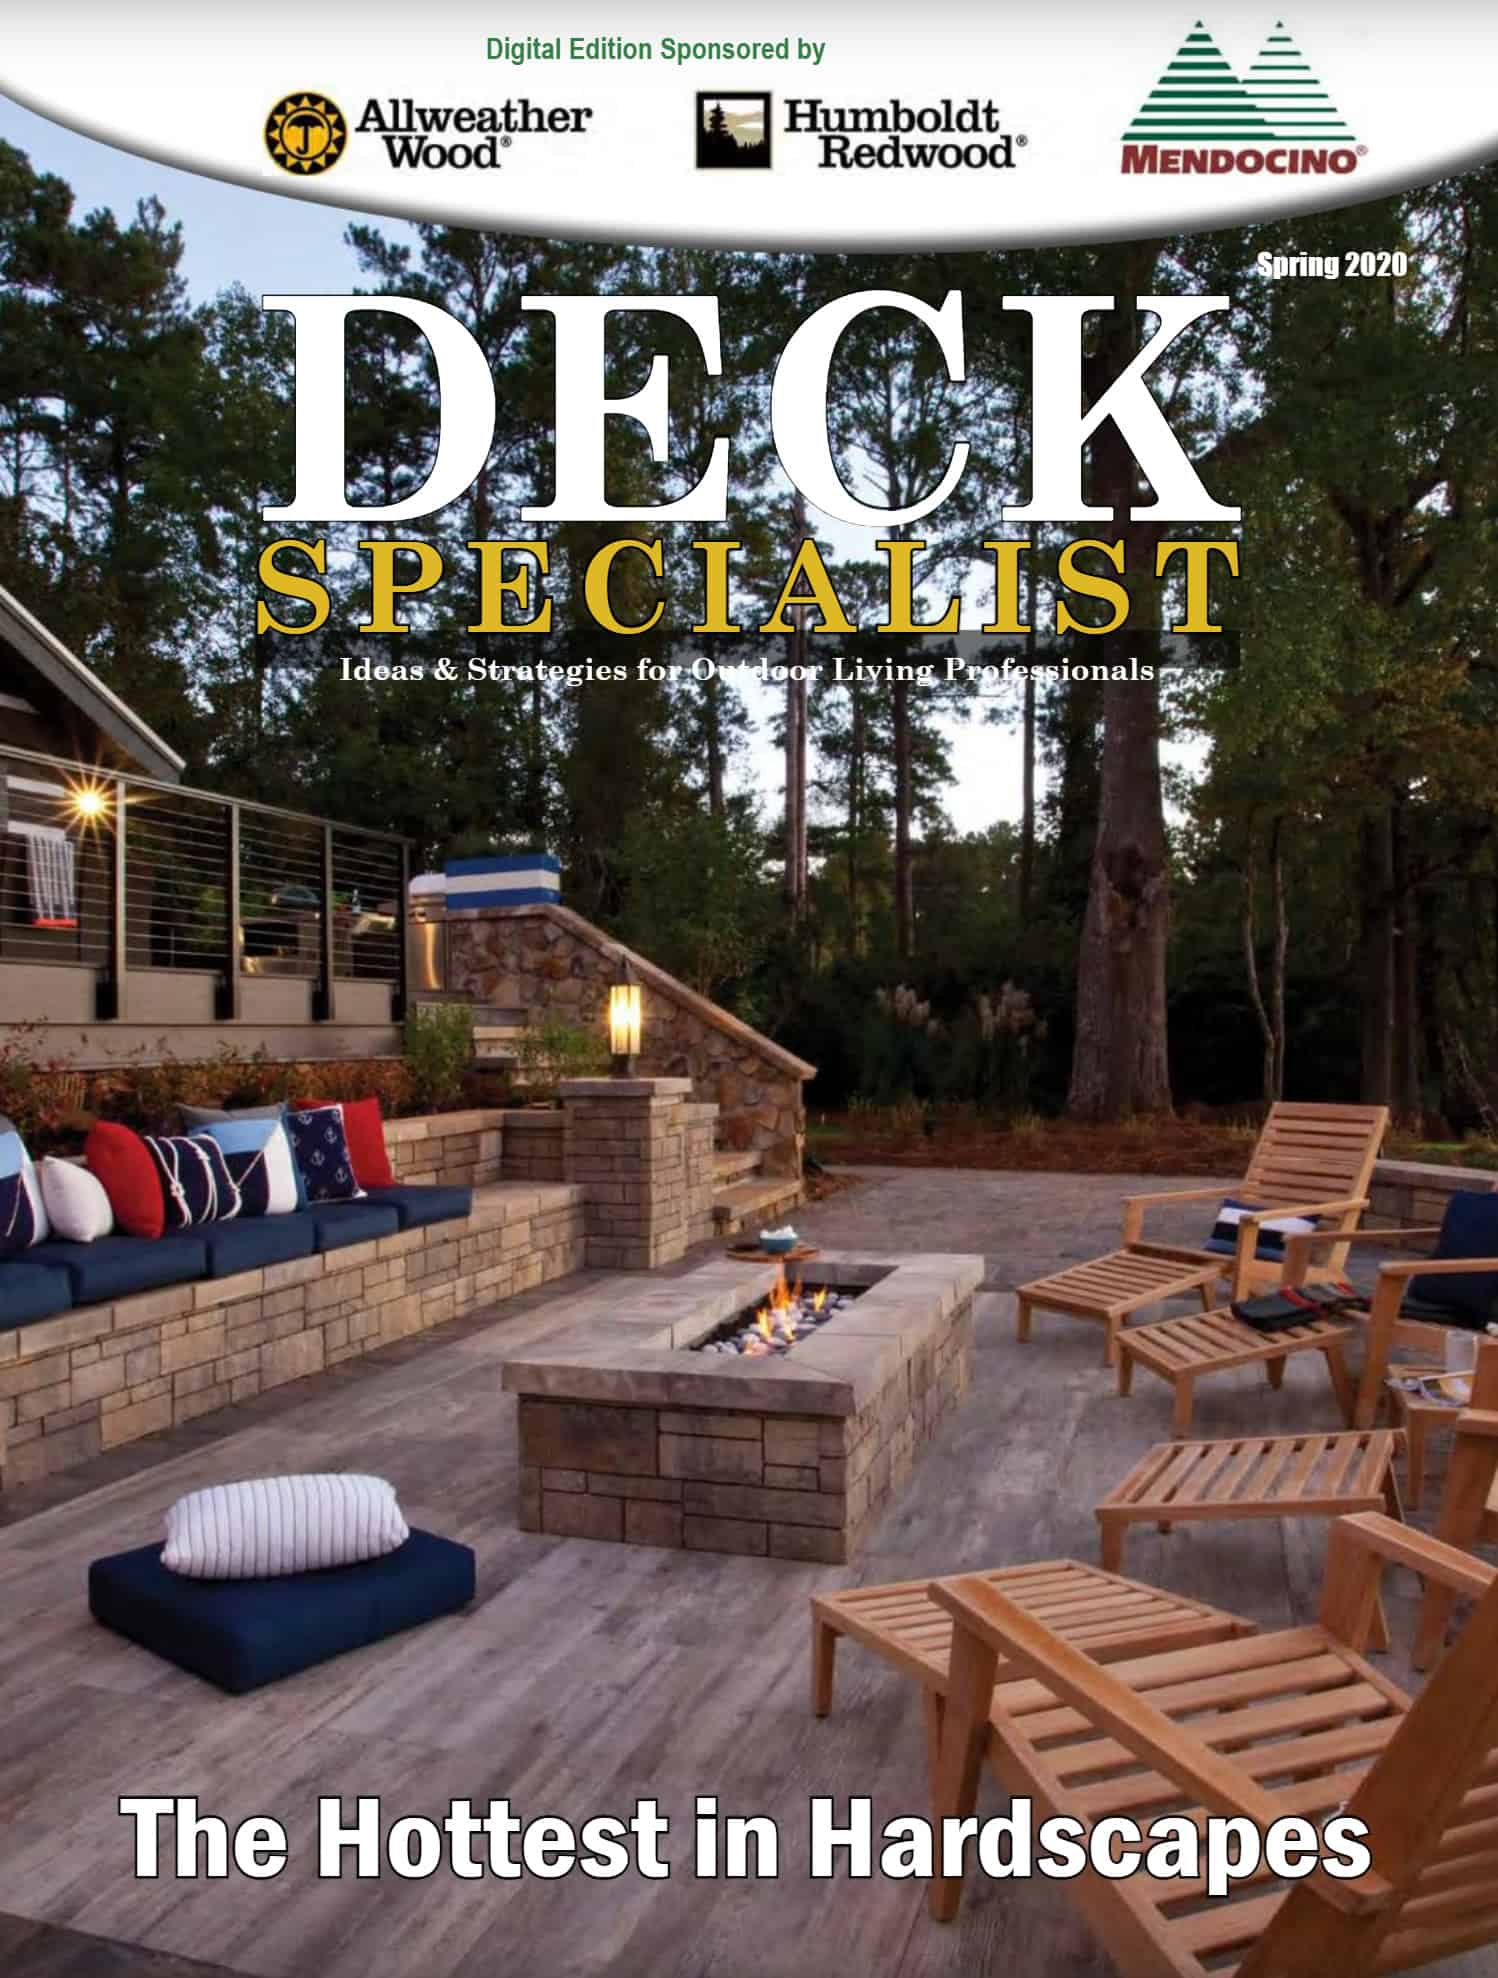 Deck Specialist Cover features Product Review on DuxxBak Decking from Green Bay Decking